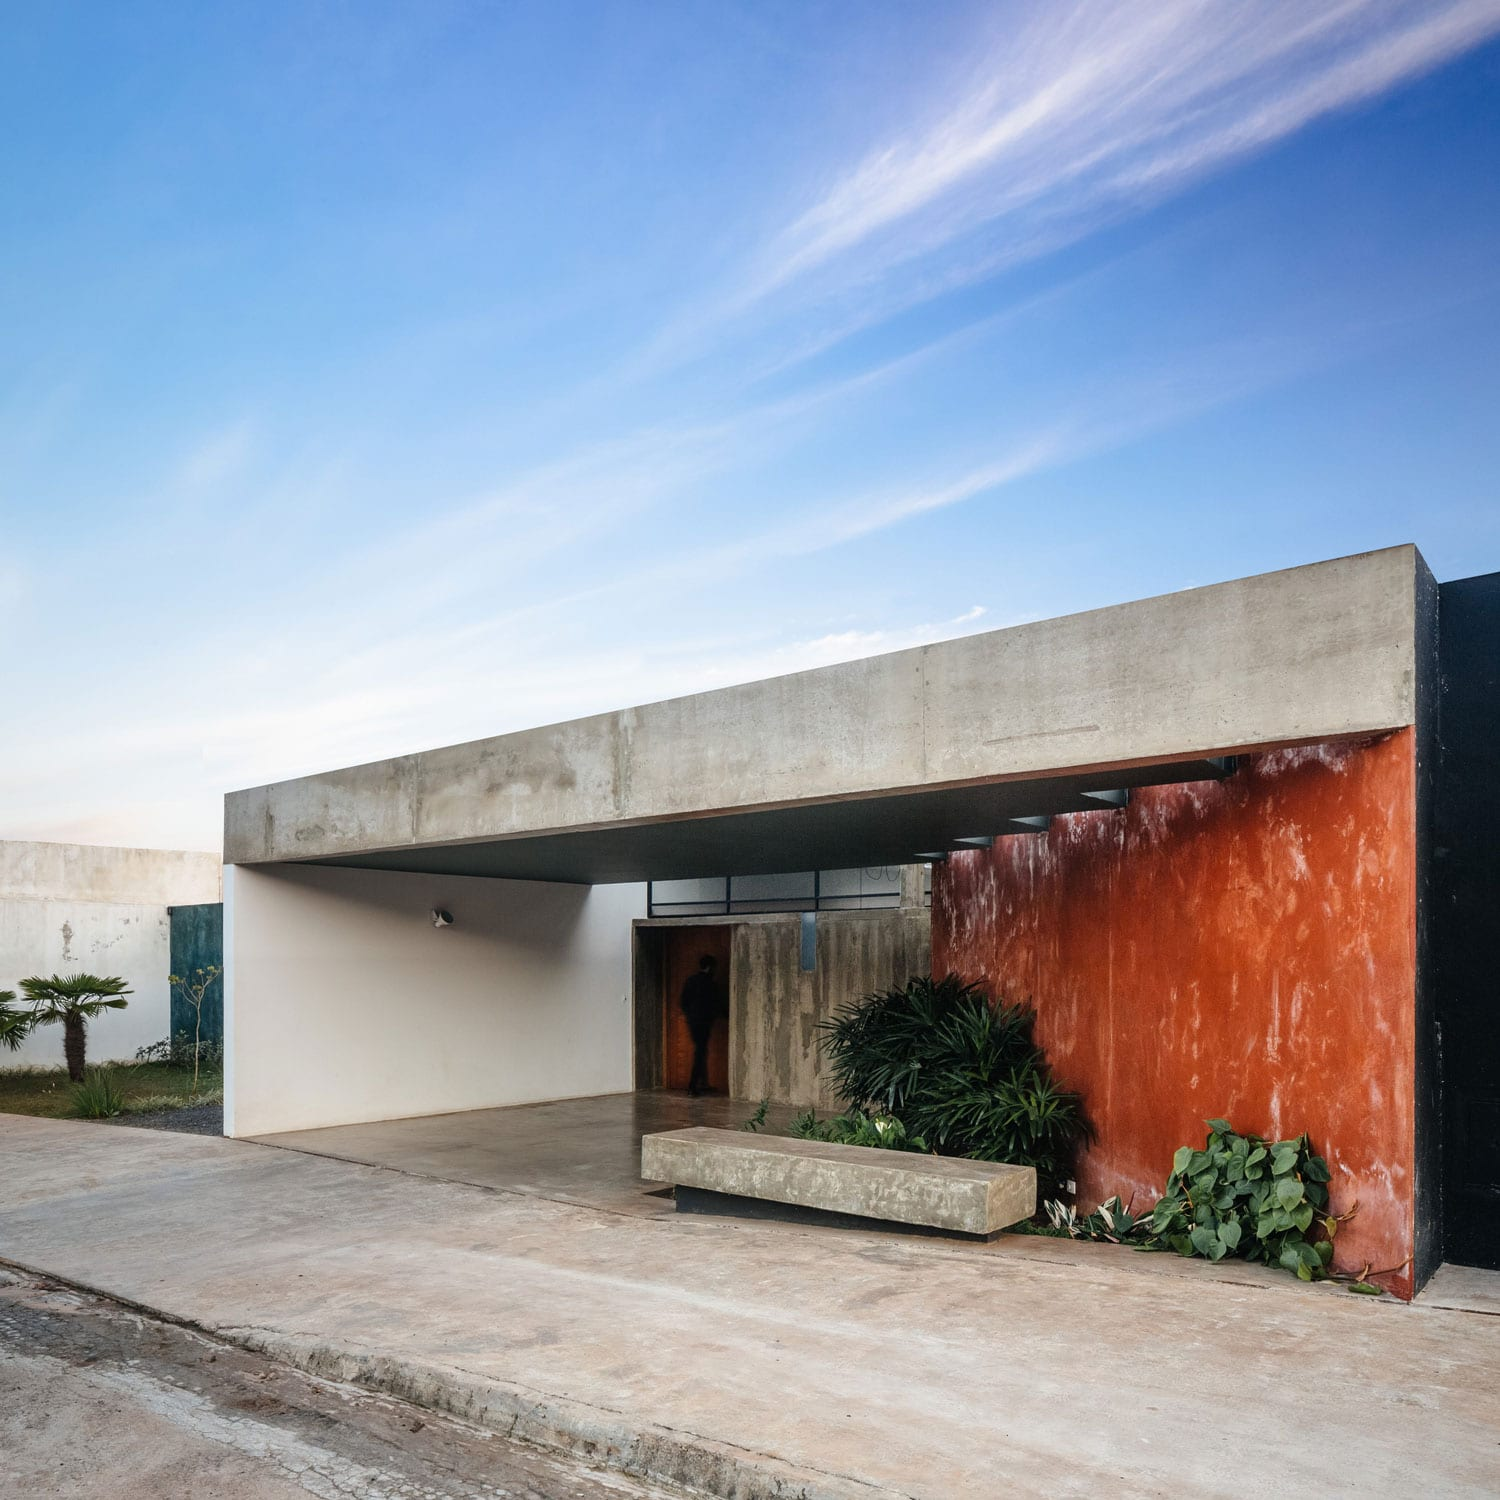 Ownerless House nº 01 in Avaré, Brazil by Vao Arquitetura | Yellowtrace